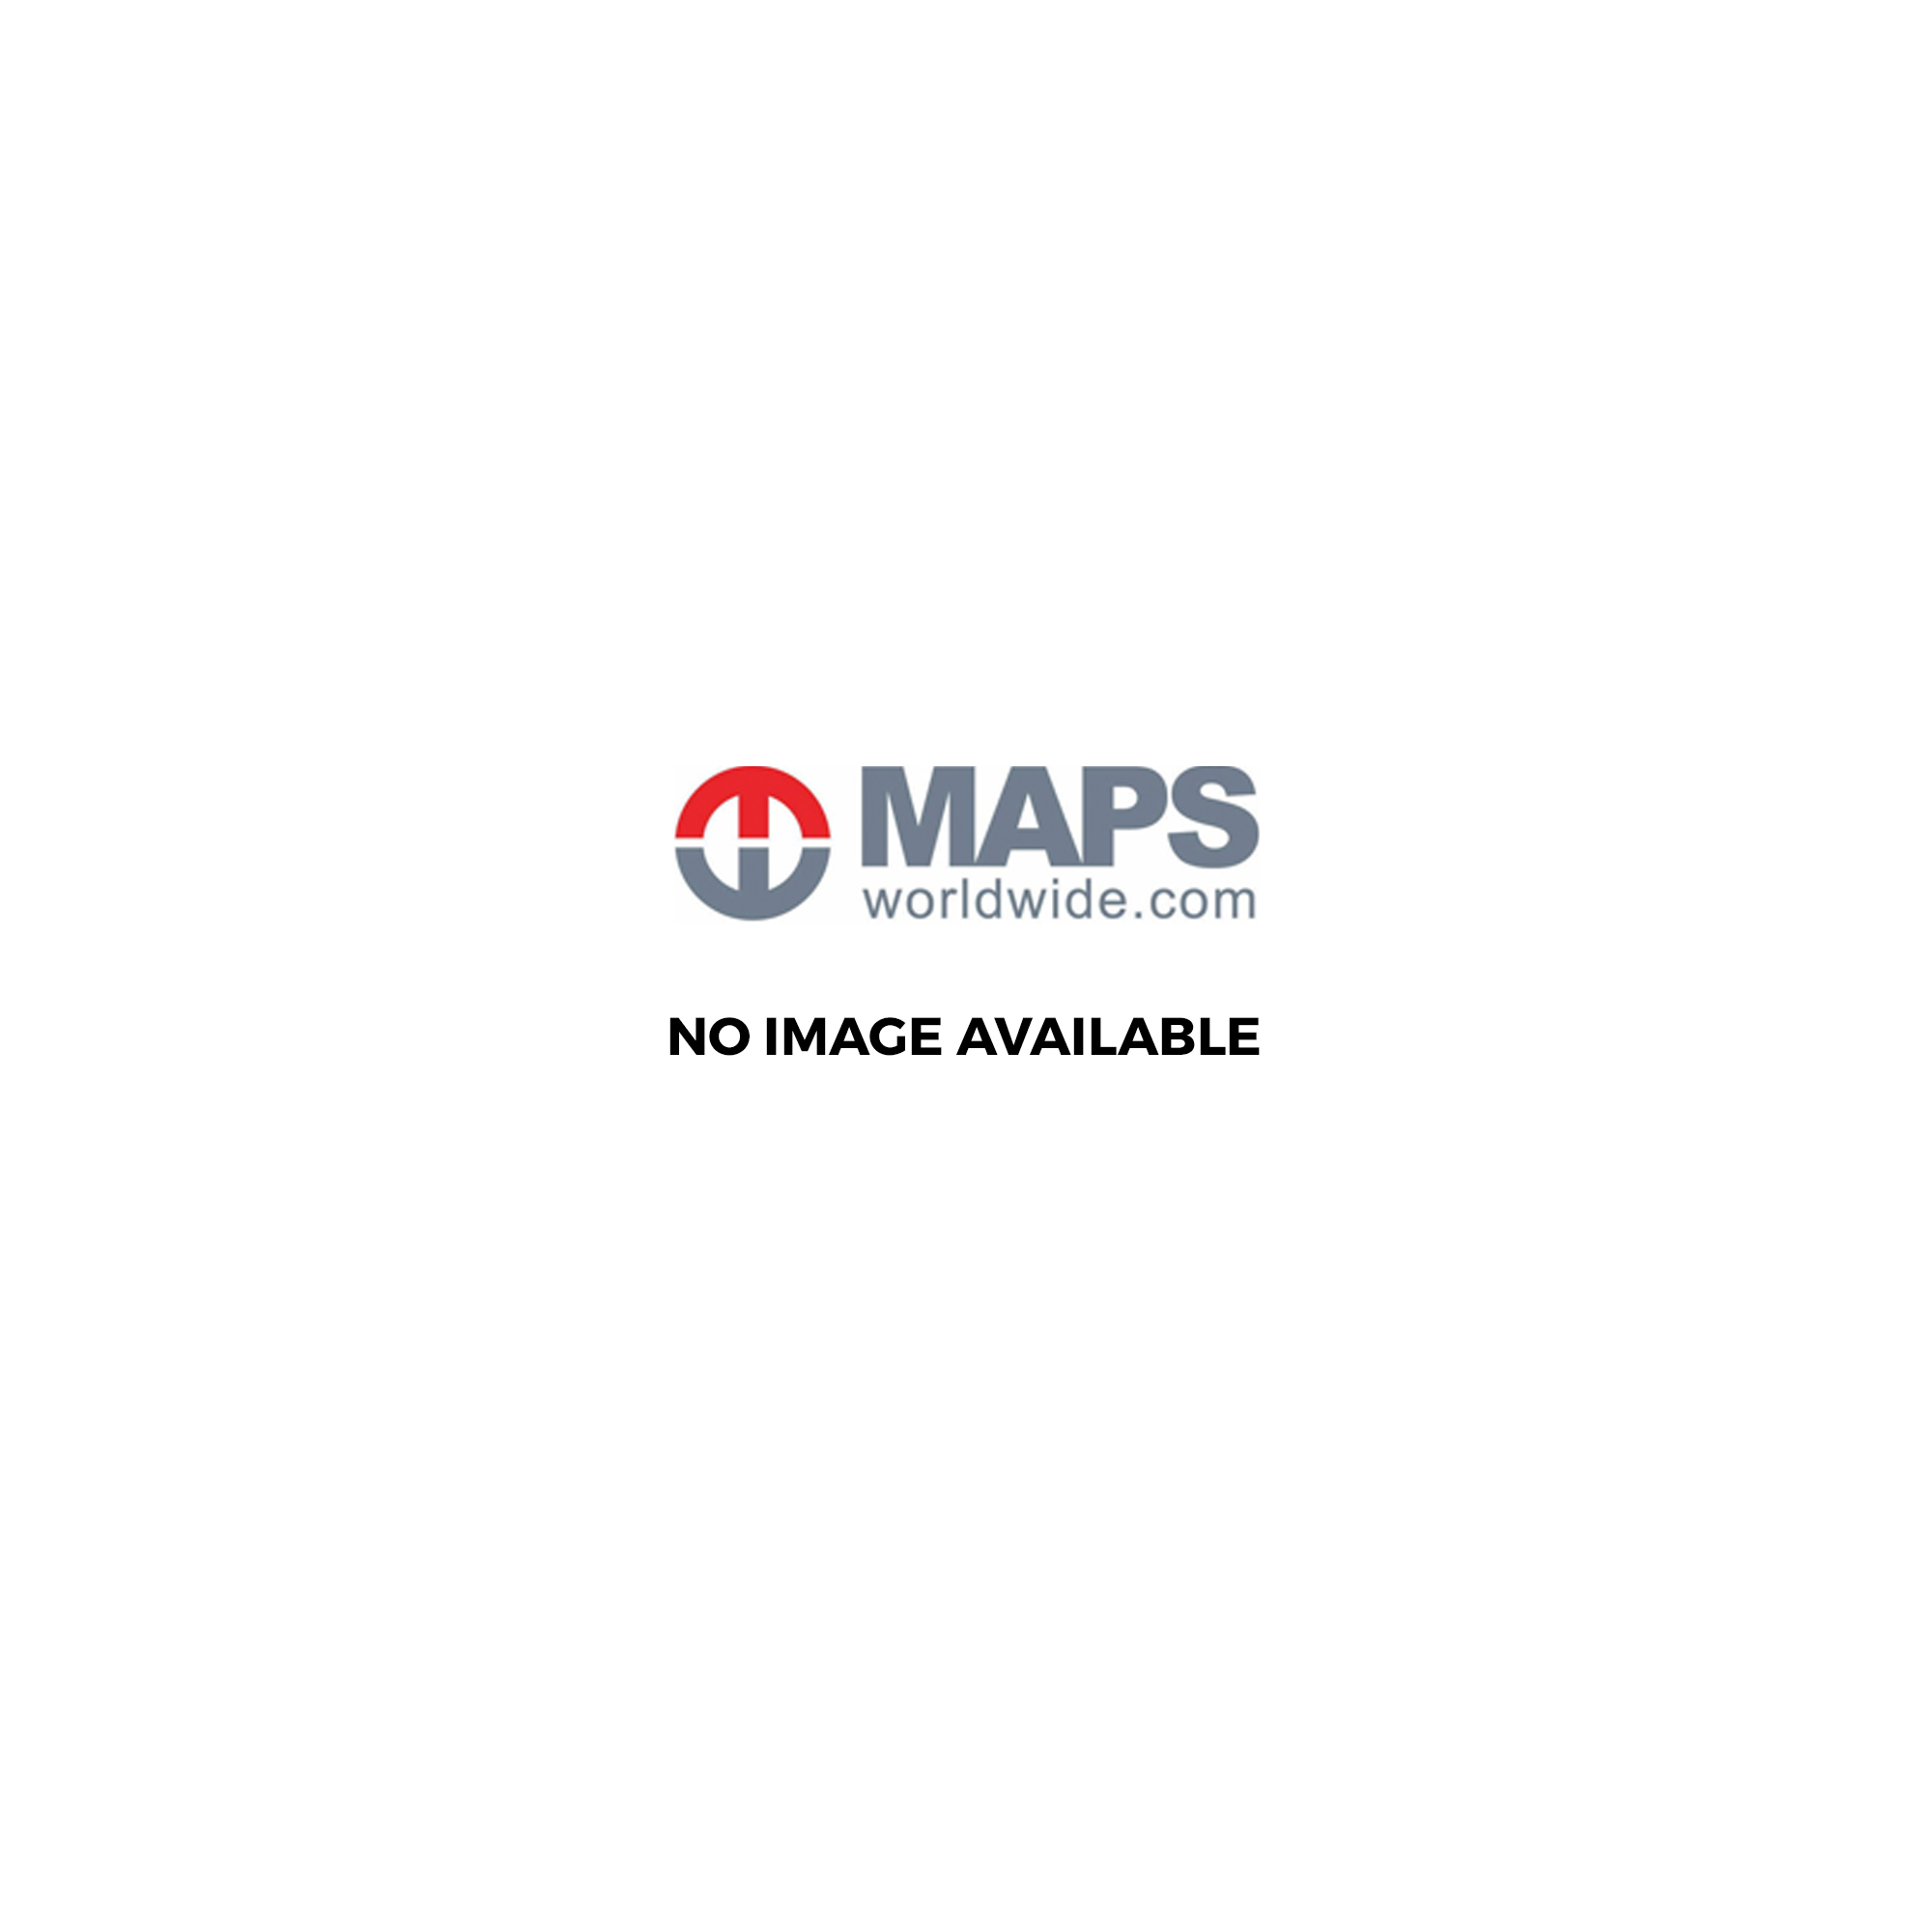 Michelin Local Maps Of France Calvados Manche Europe From - Michelin germany southwest map 545